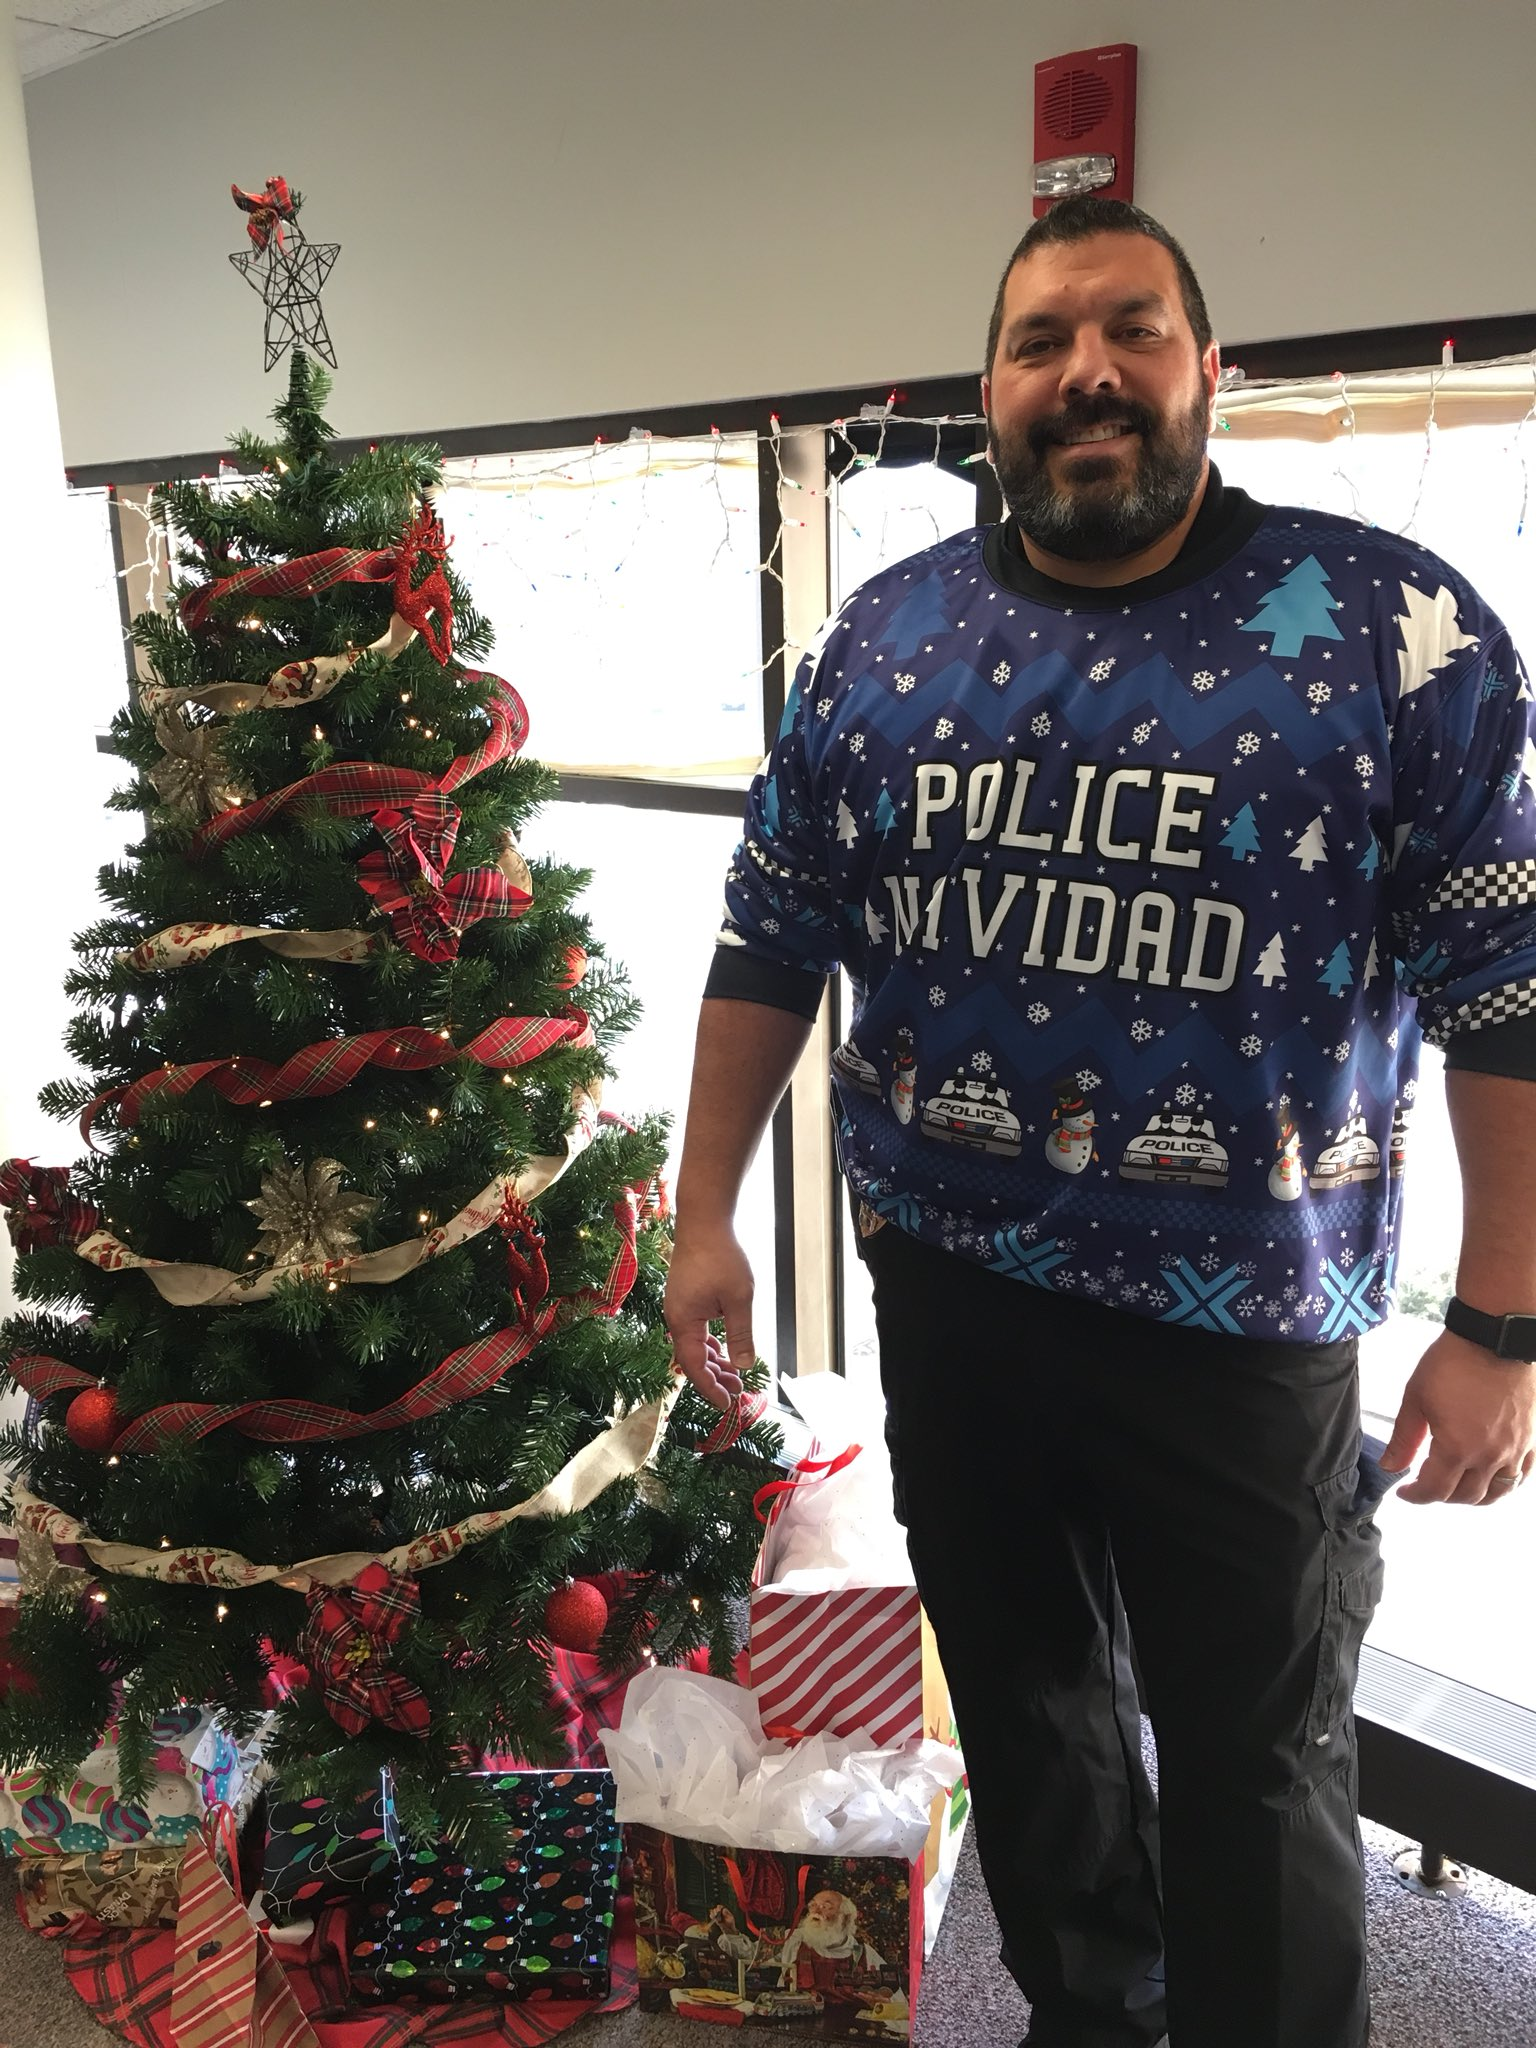 #UglySweater Voting Round 8!: Vote for your favorite ugly sweater! Detective Vince Ramirez on the left or Detective Jakub Klatka on the right? https://t.co/pAEkmDt7FY